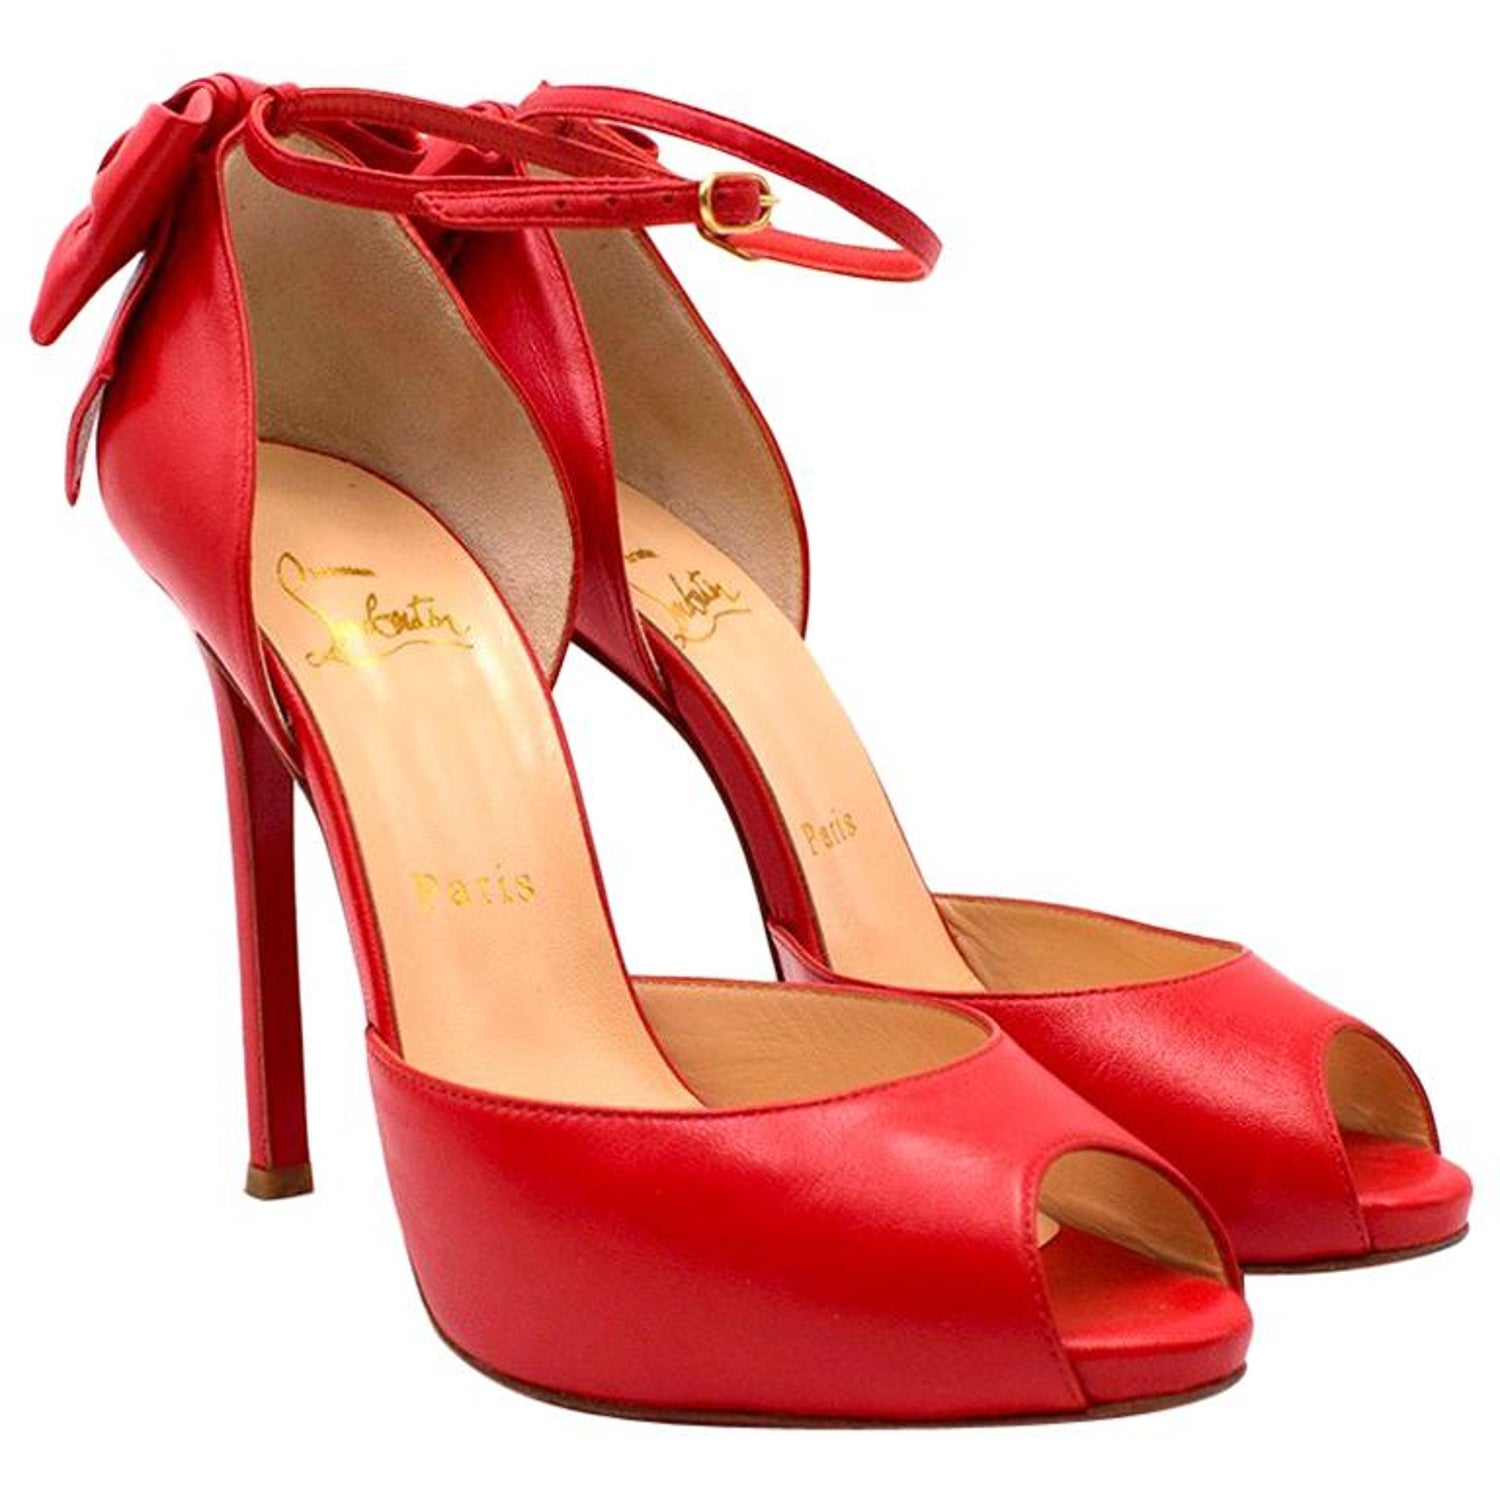 0f86d7250a3 Christian Louboutin Red Peep-toe Bow Embellished Sandals 37.5